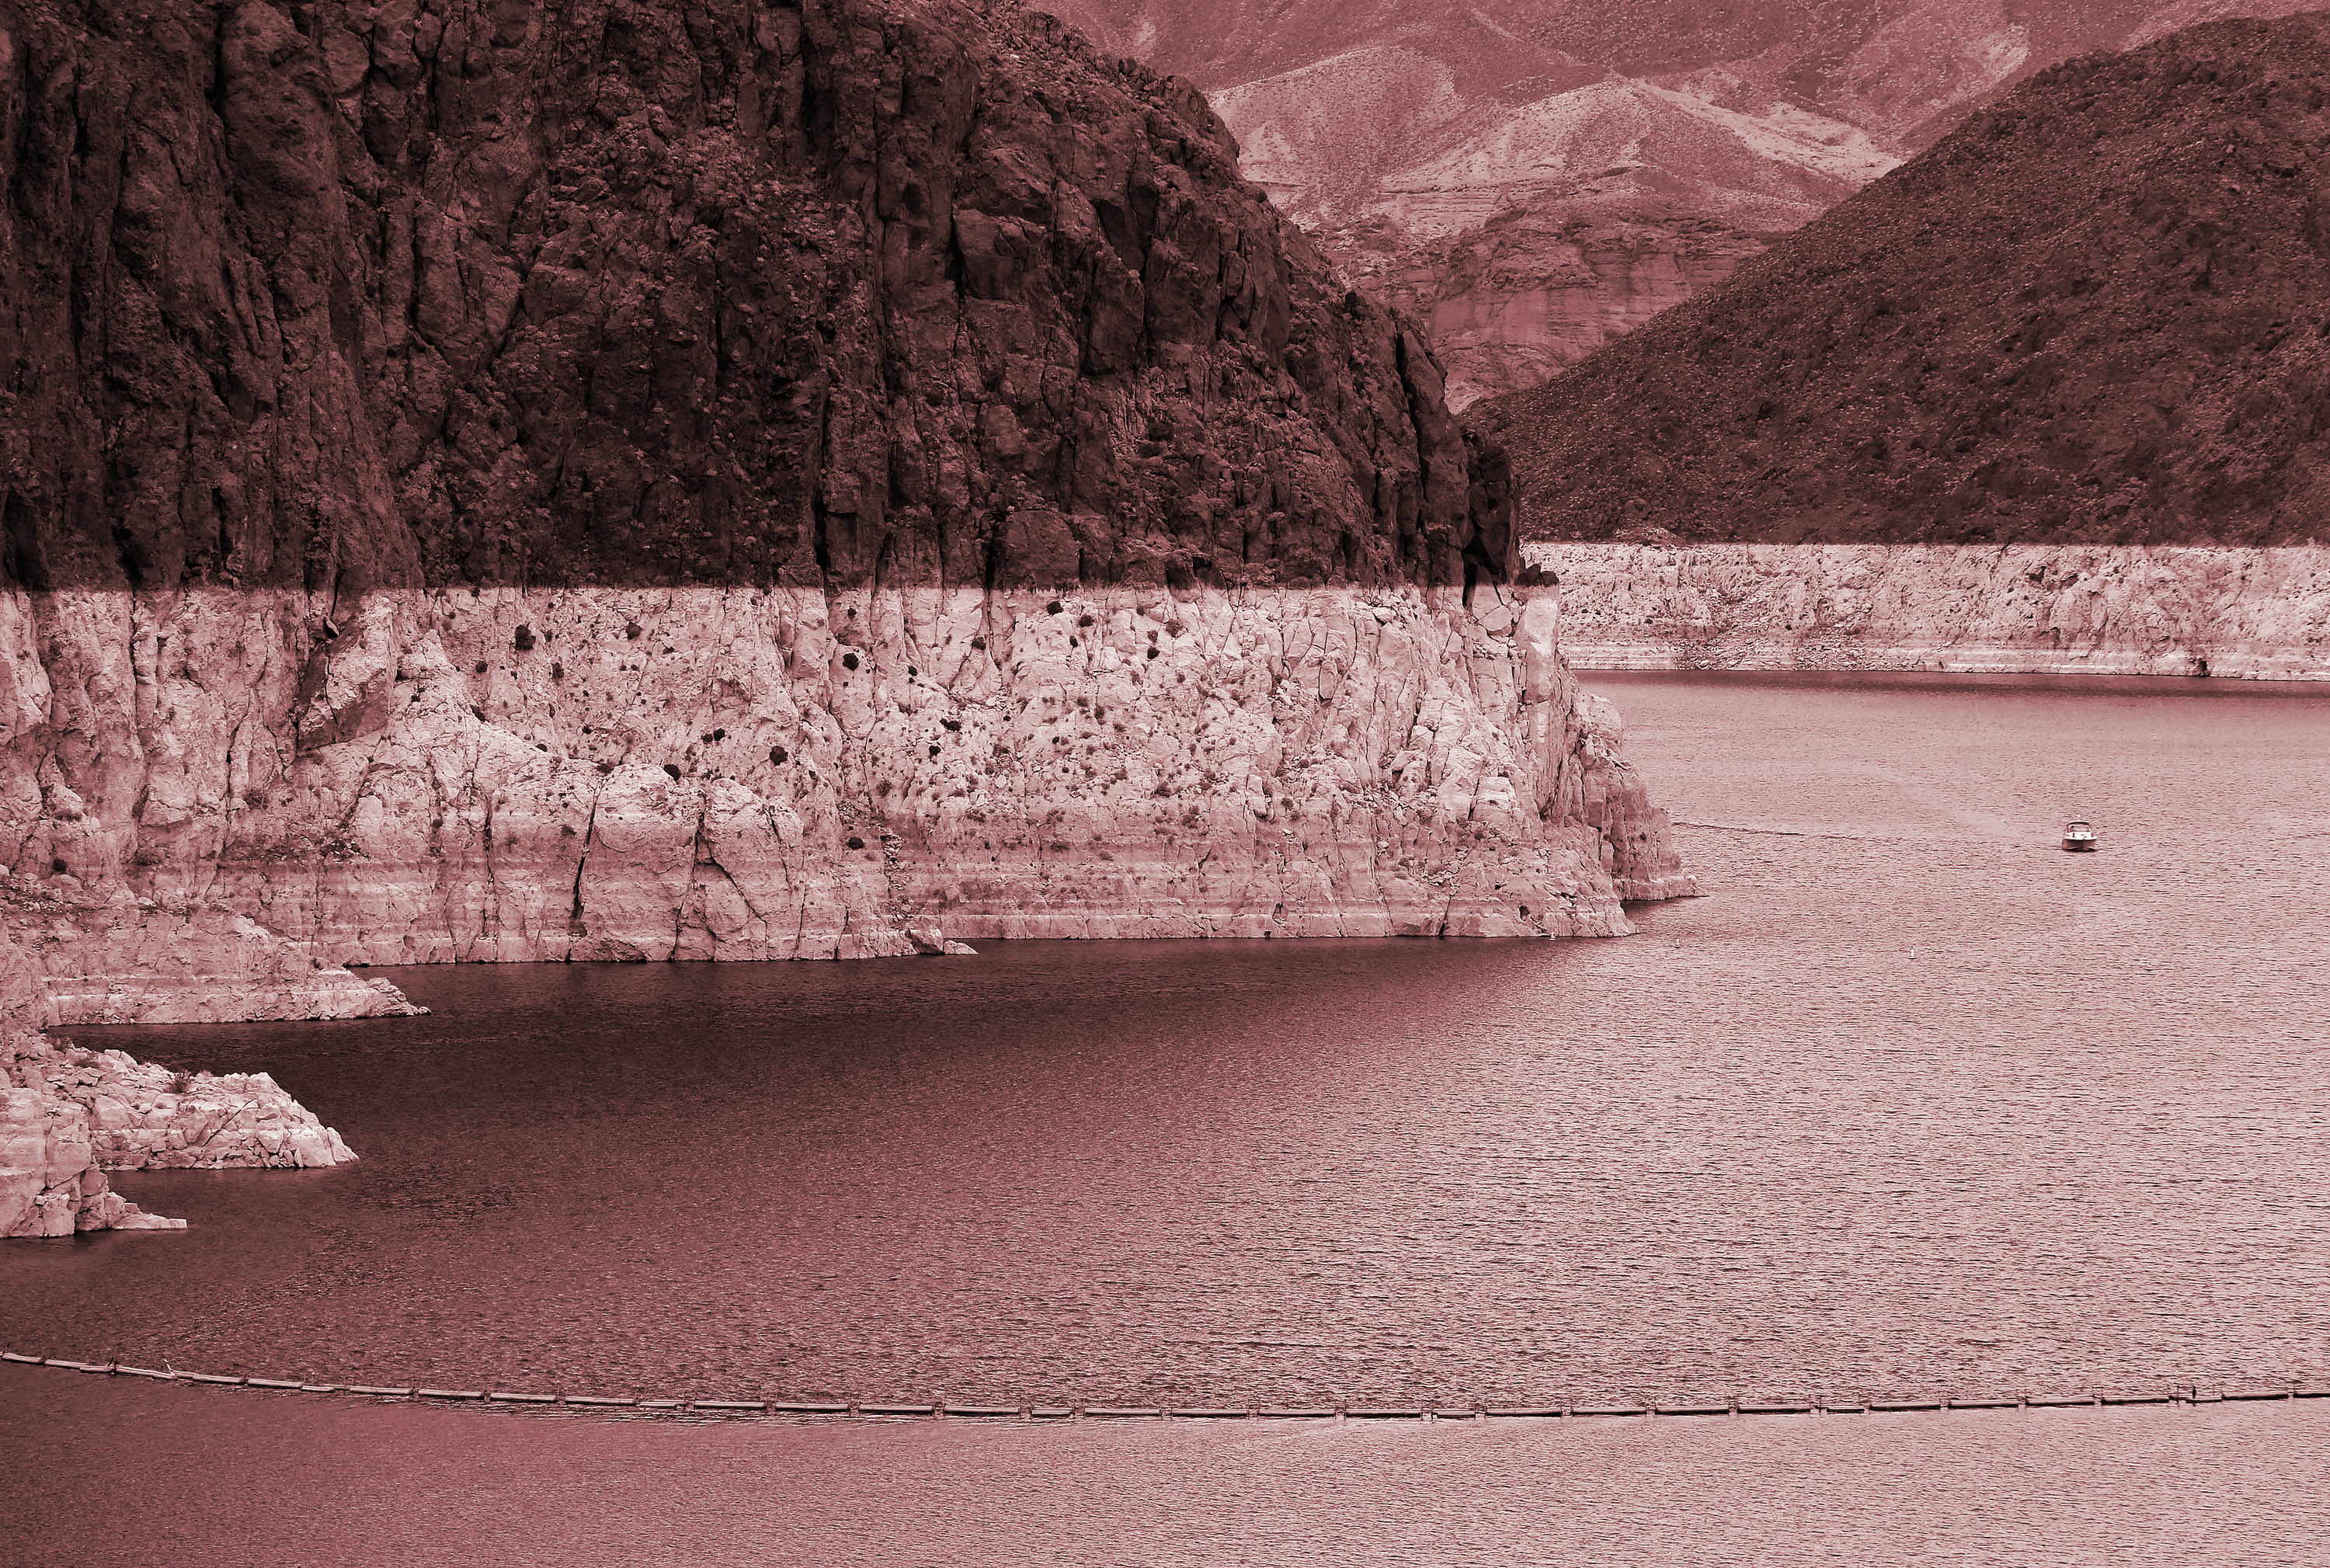 d4f3f0827 Aqueduct systems move water out of the Colorado River and out to various  farming regions and ...